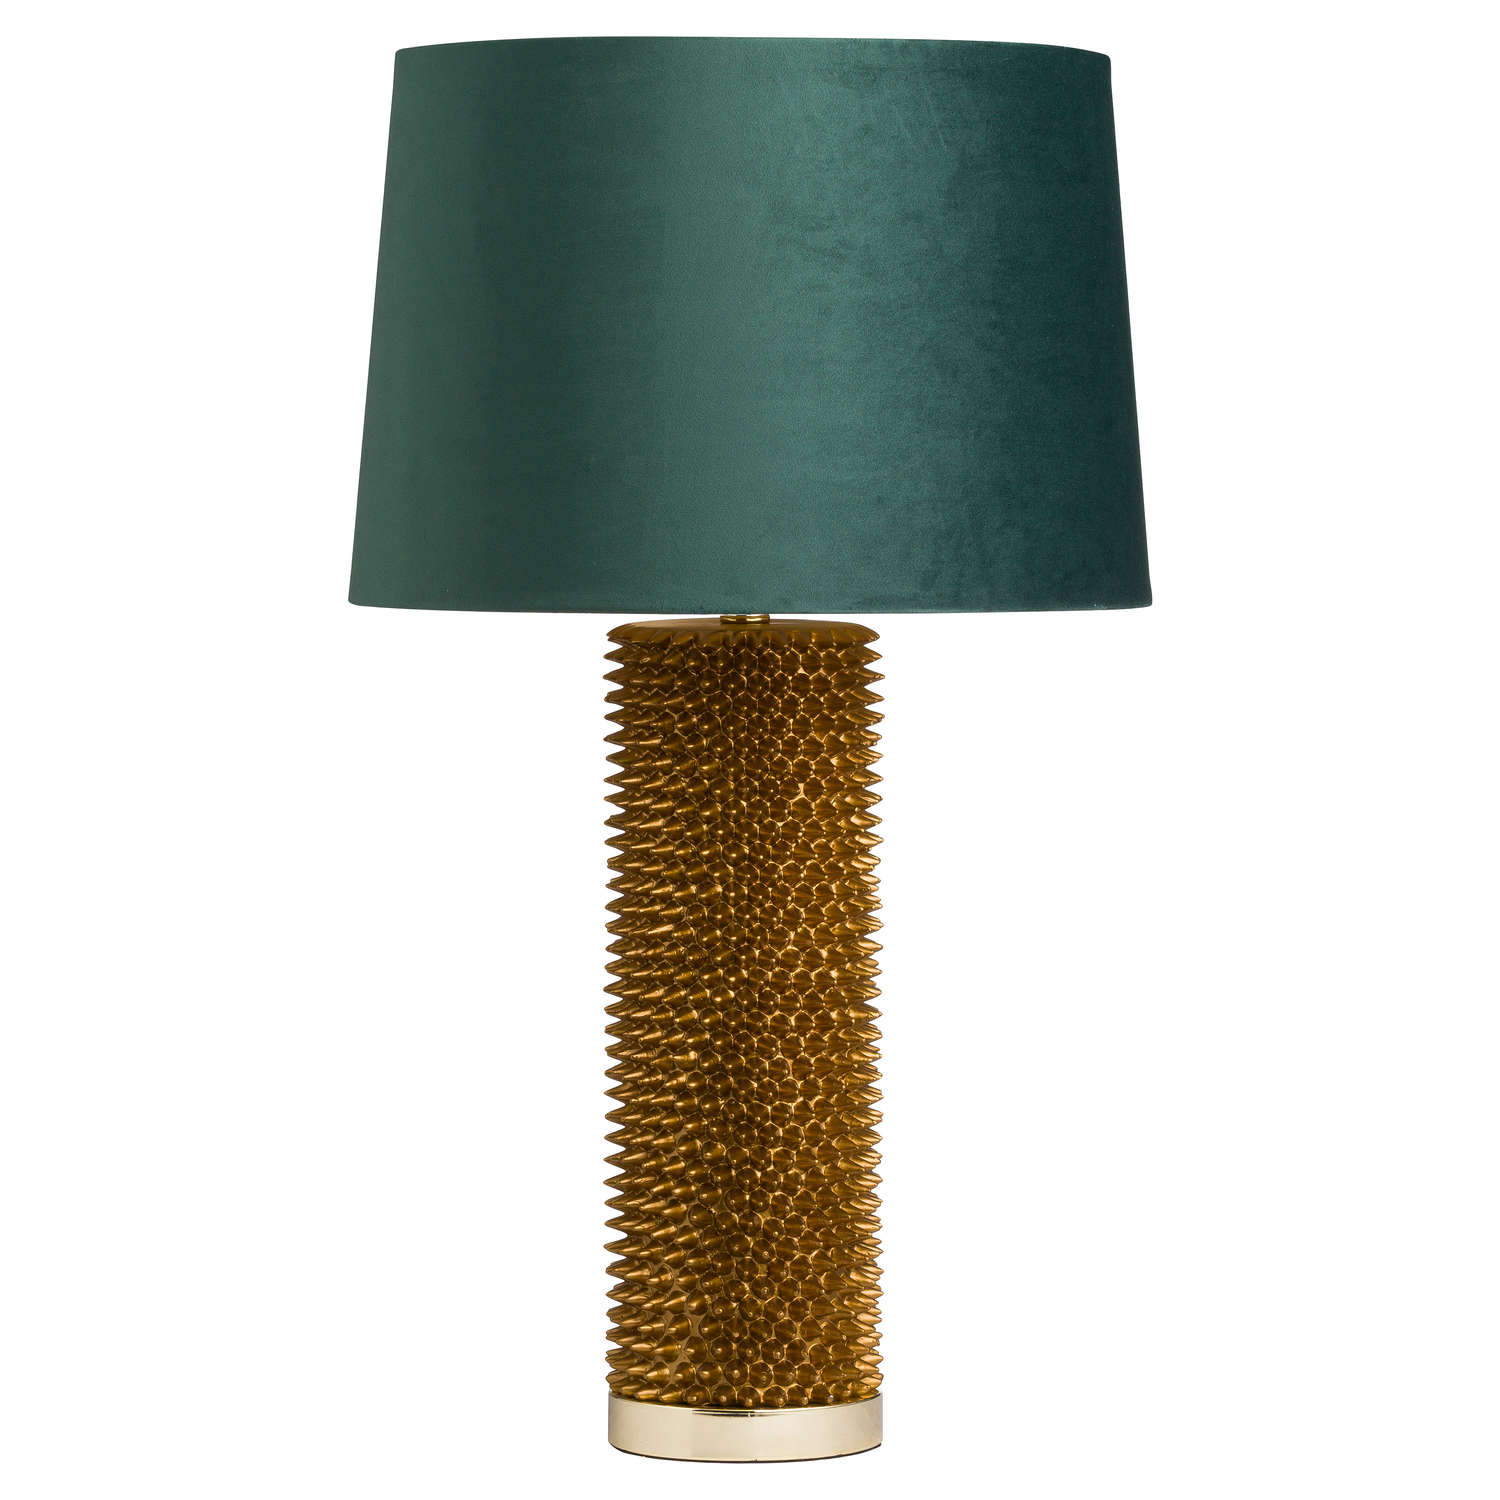 Antique Gold Acantho Table Lamp + Emerald Green Velvet Shade with Gold Lining